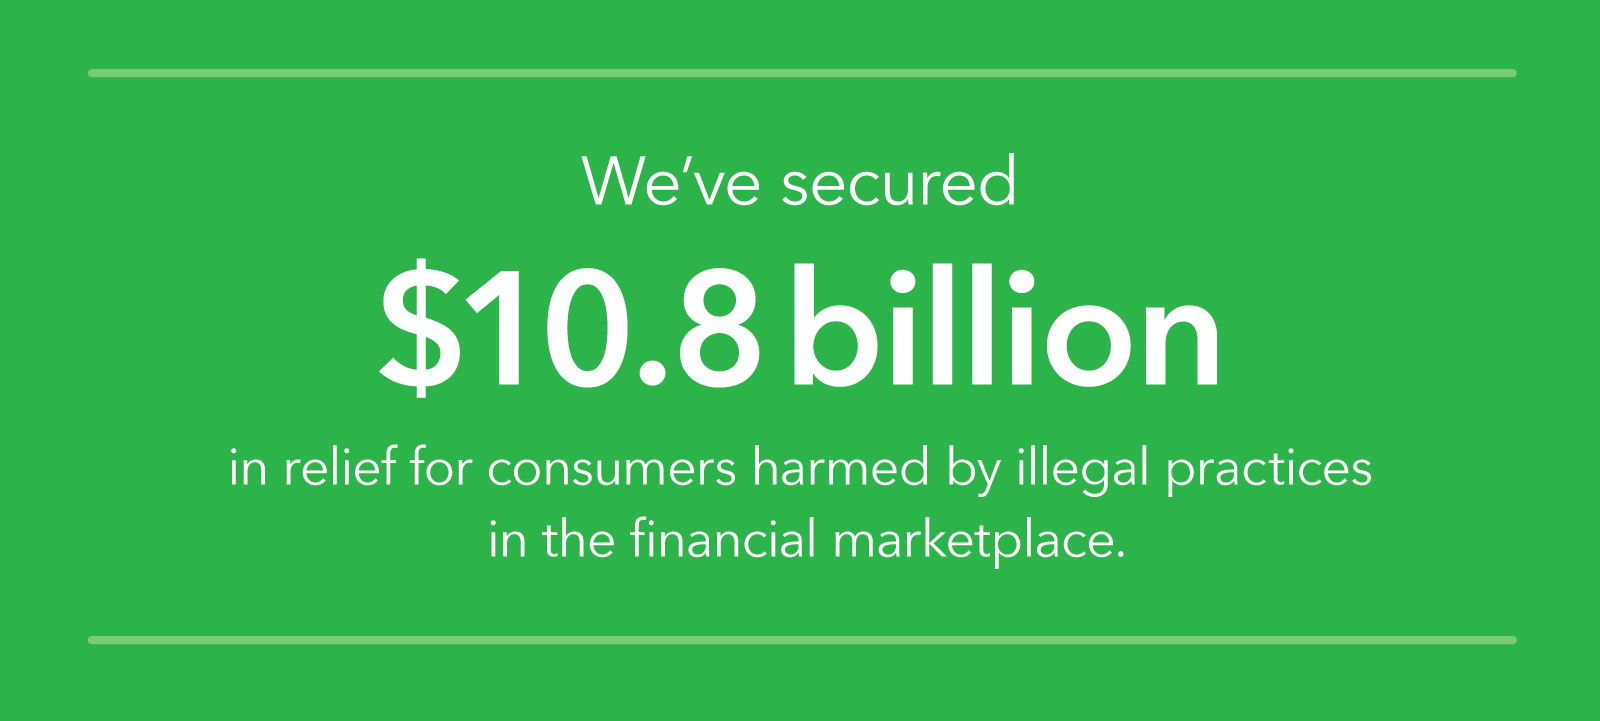 We've secured over $10.8 billion dollars in relief for consumers harmed by illegal practices.